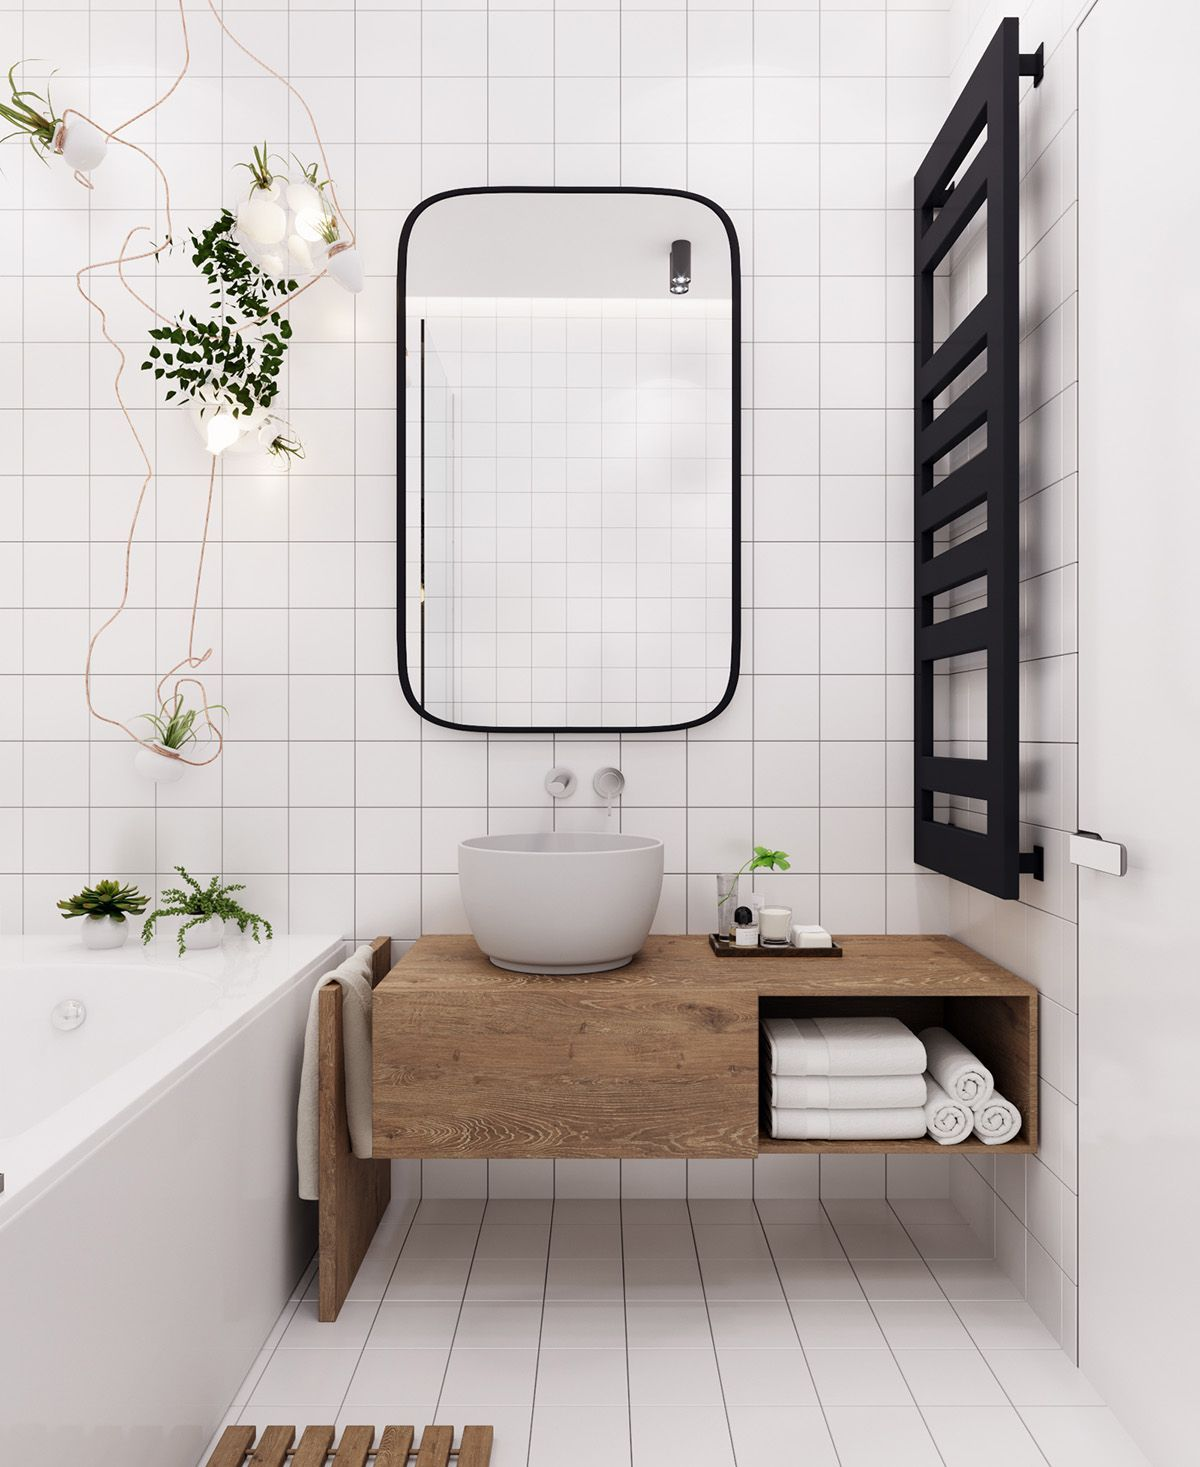 Two Large Scandinavian Style Homes For Young Families Scandinavian Design Can Be A Very Good Choice For Families Looking For A Way To Unify Their Home Not Only Modern Bathroom Mirrors